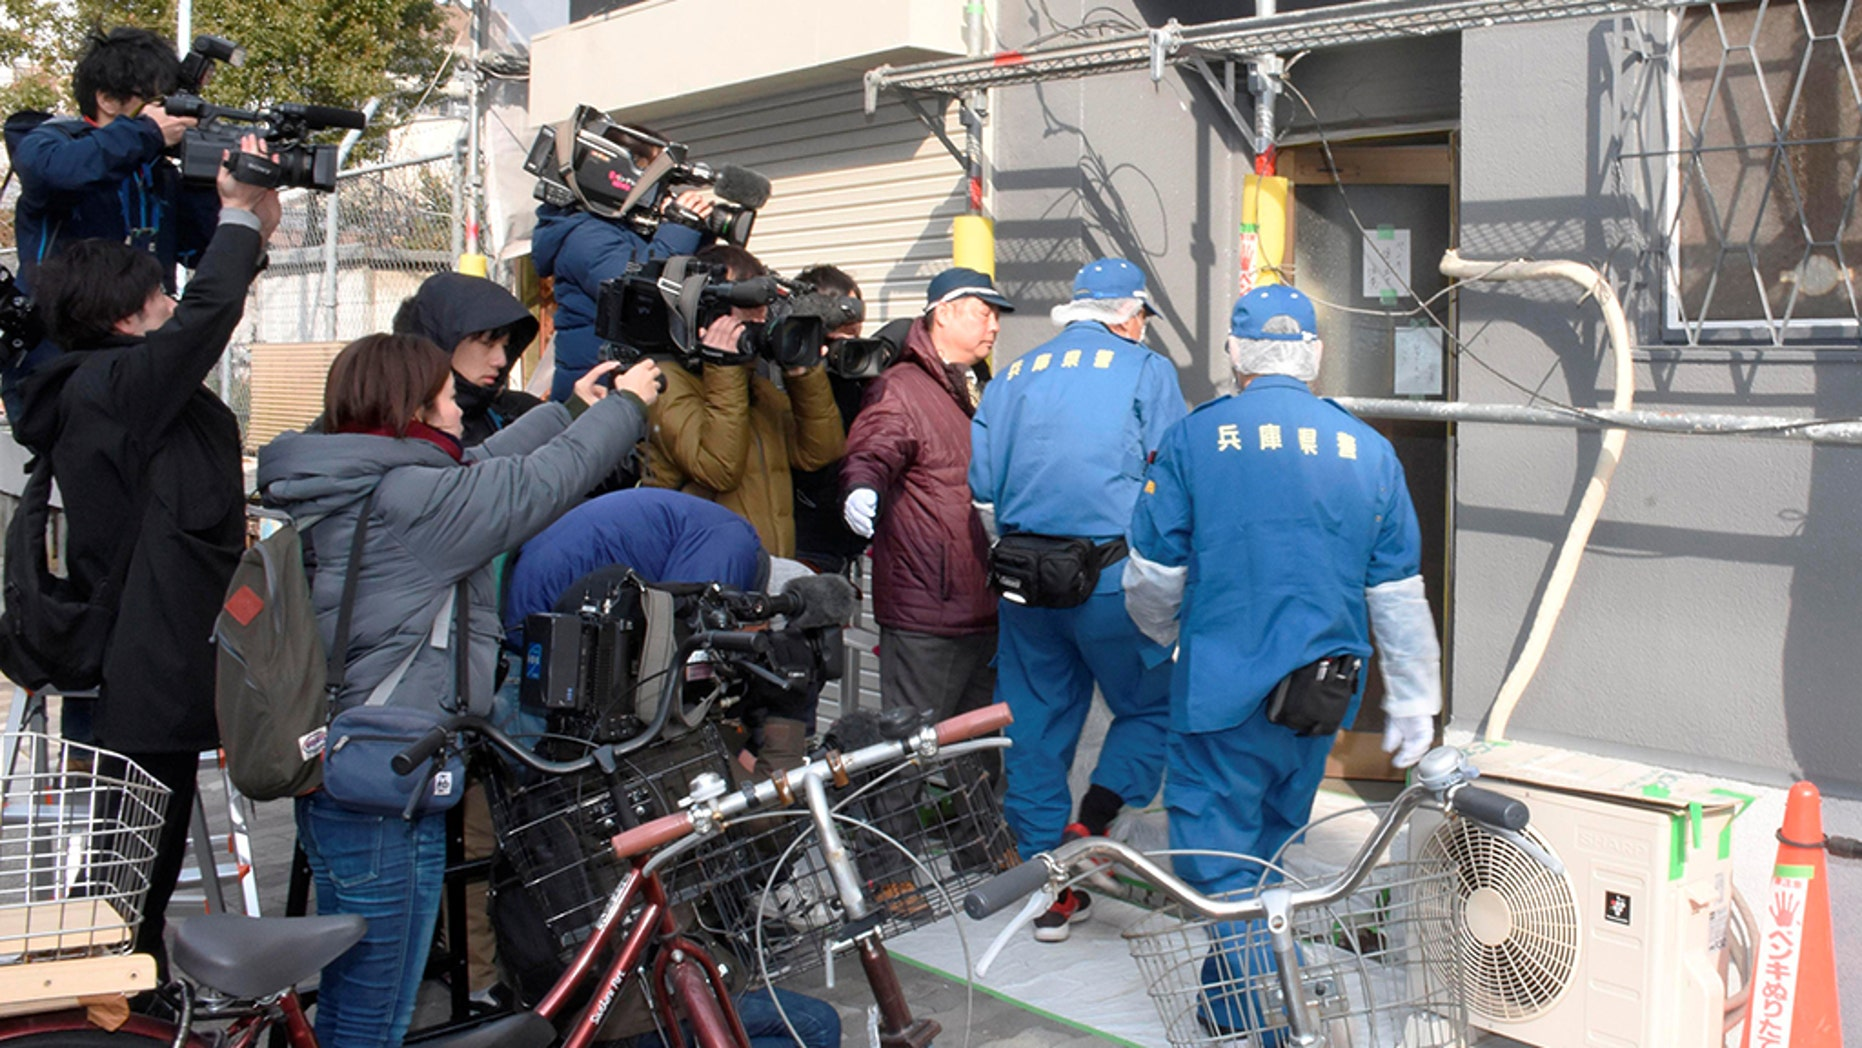 Hyogo Prefectural authorities enter a lodging facility where the severed head of a woman was found, after an American man was arrested on suspicion of confining the missing 27-year-old woman.